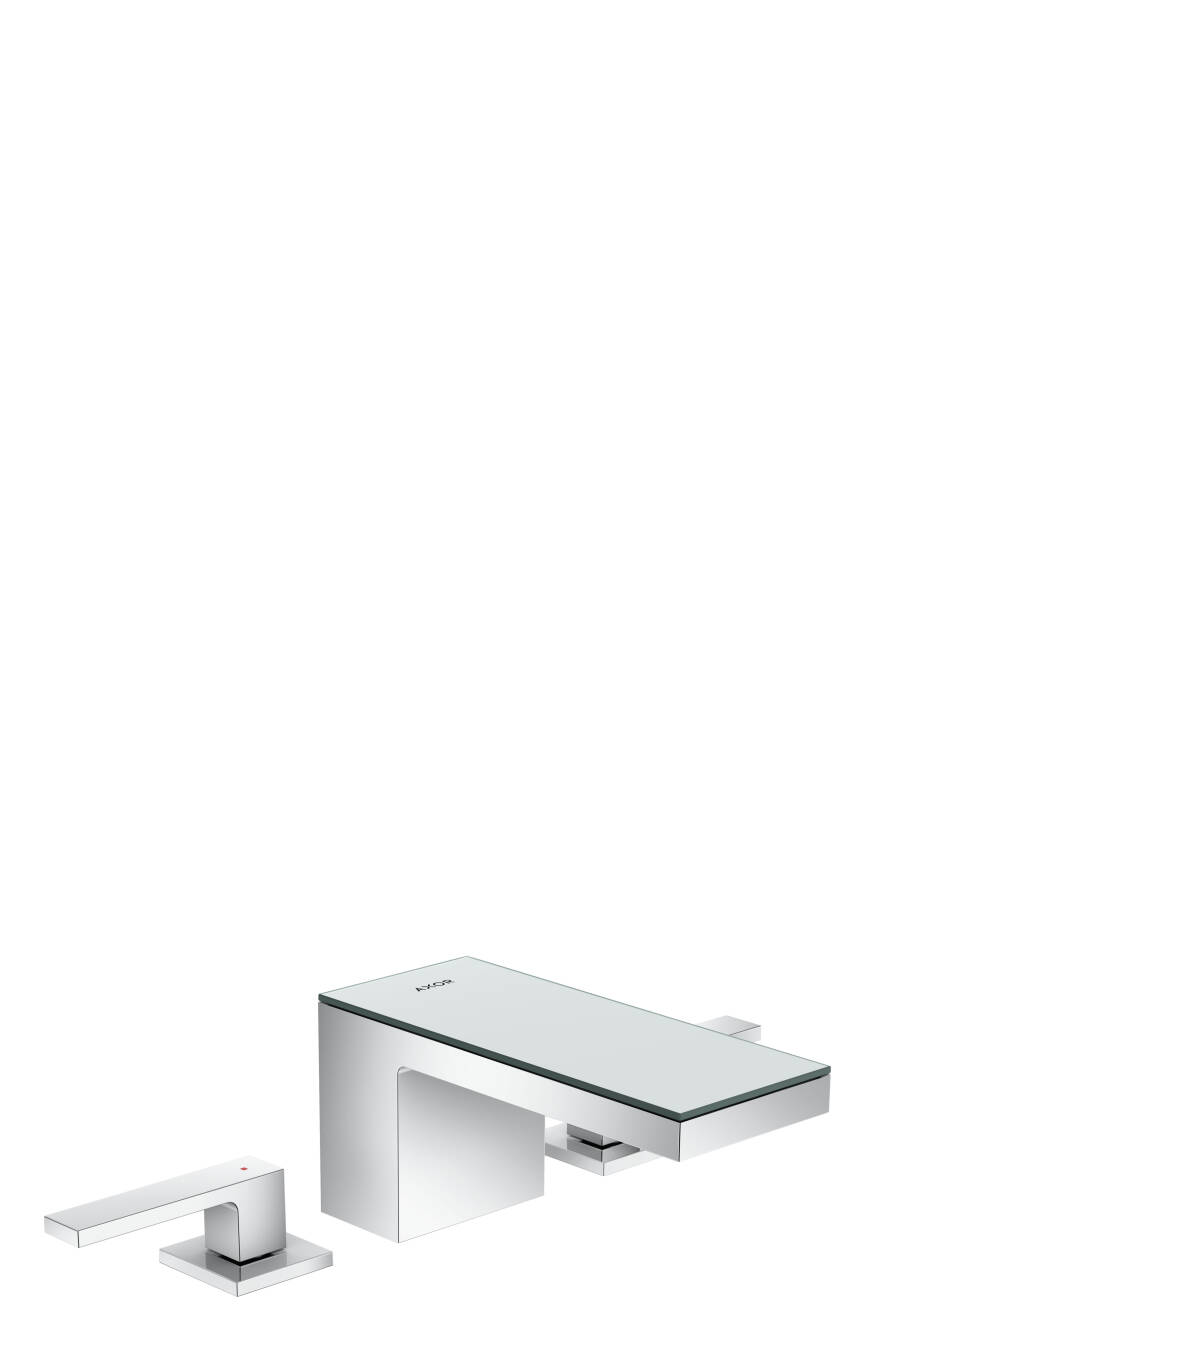 3-hole basin mixer 70 with push-open waste set, Chrome/Mirror Glass, 47050000